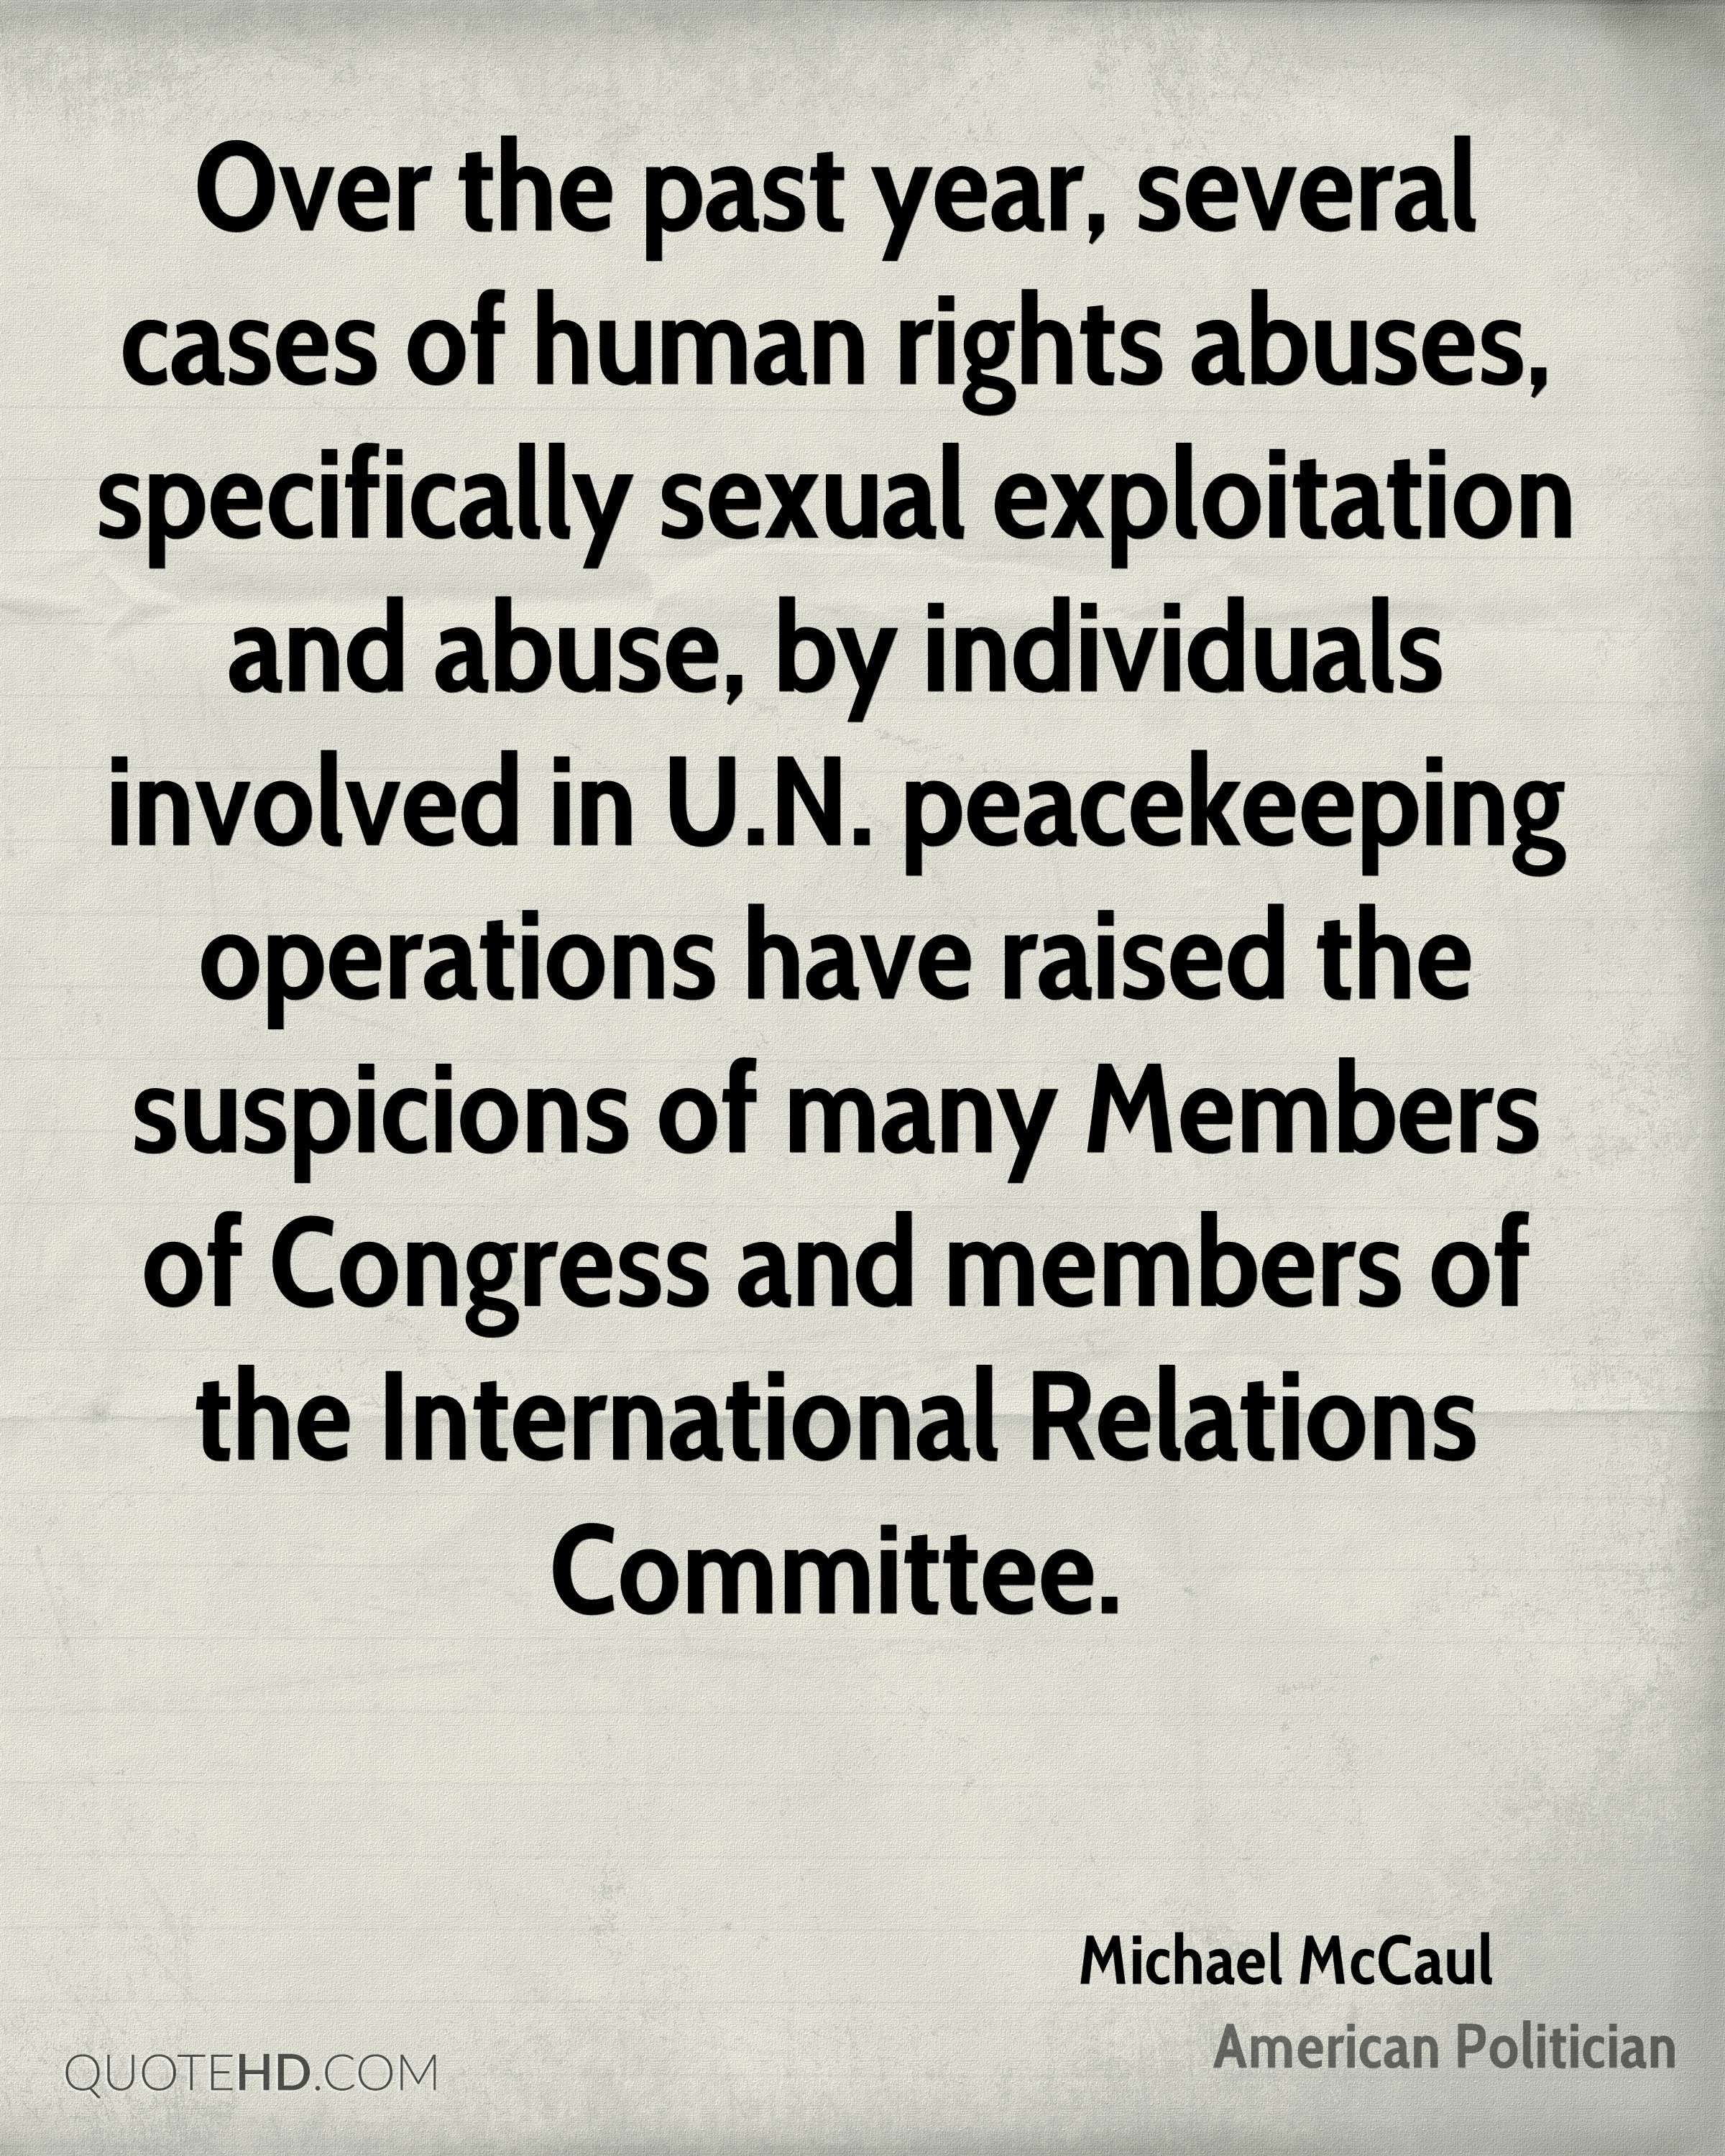 Over the past year, several cases of human rights abuses, specifically sexual exploitation and abuse, by individuals involved in U.N. peacekeeping operations have raised the suspicions of many Members of Congress and members of the International Relations Committee.